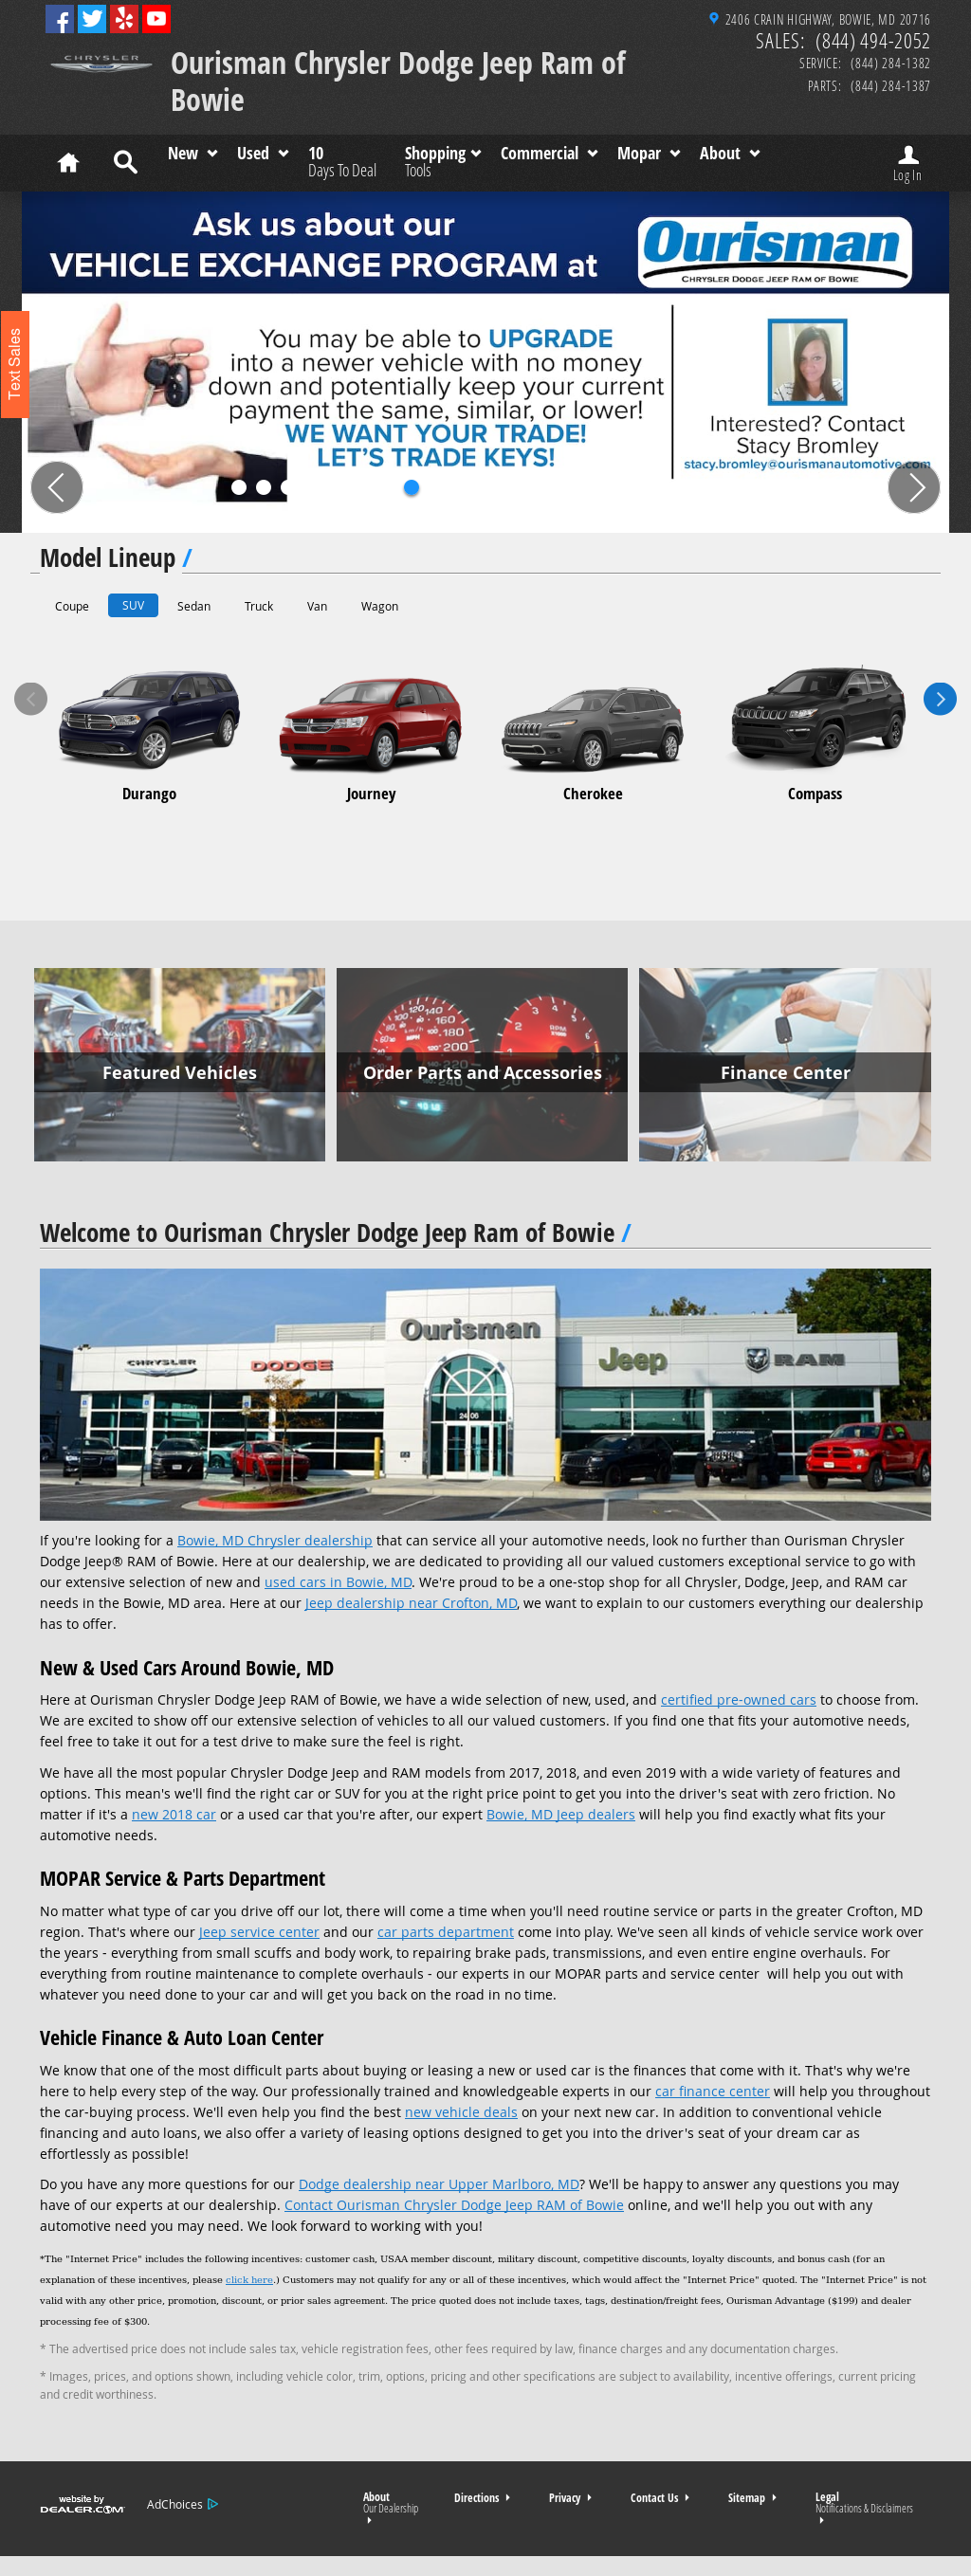 Ourisman Chrysler Dodge Jeep Ram Of Bowie Website History